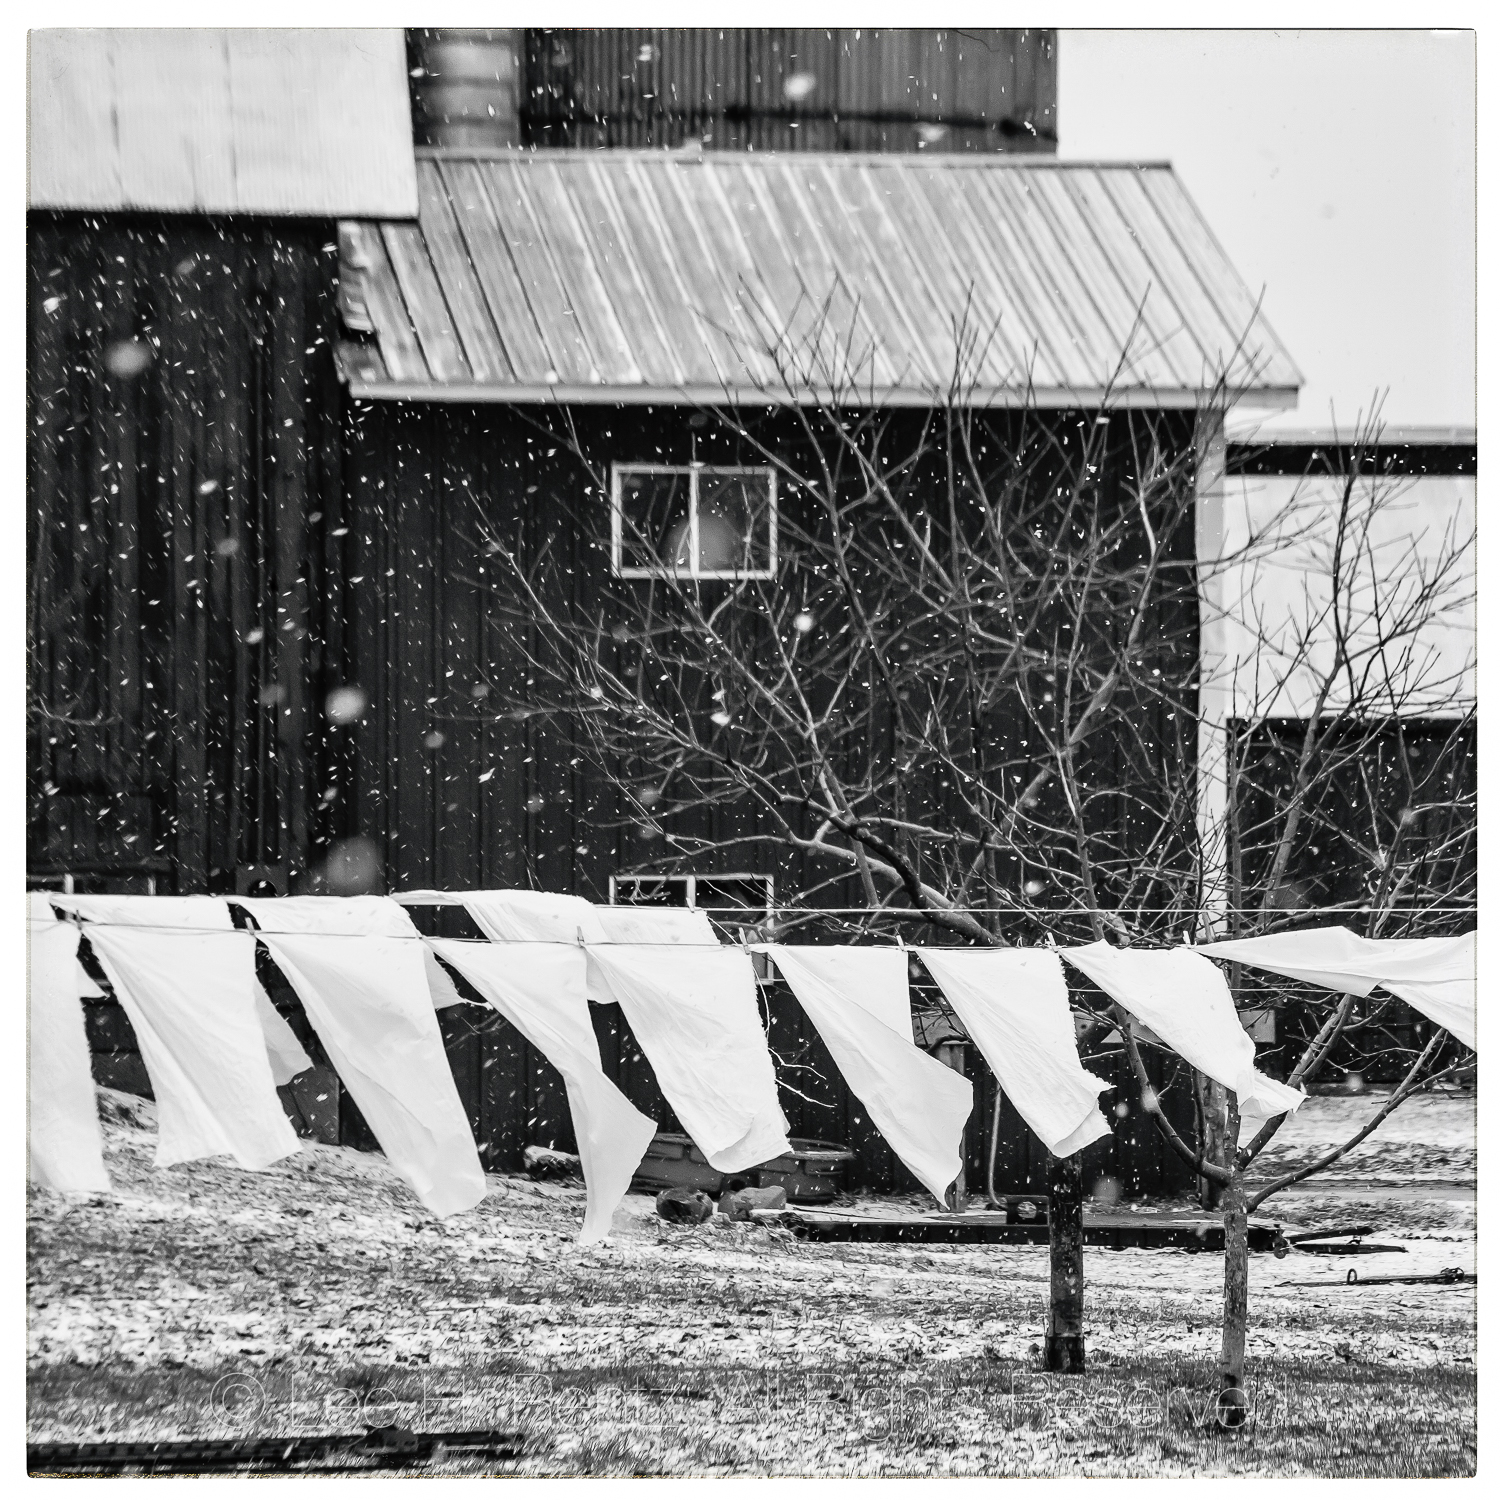 Clothesline in an Amish Community in Central Michigan